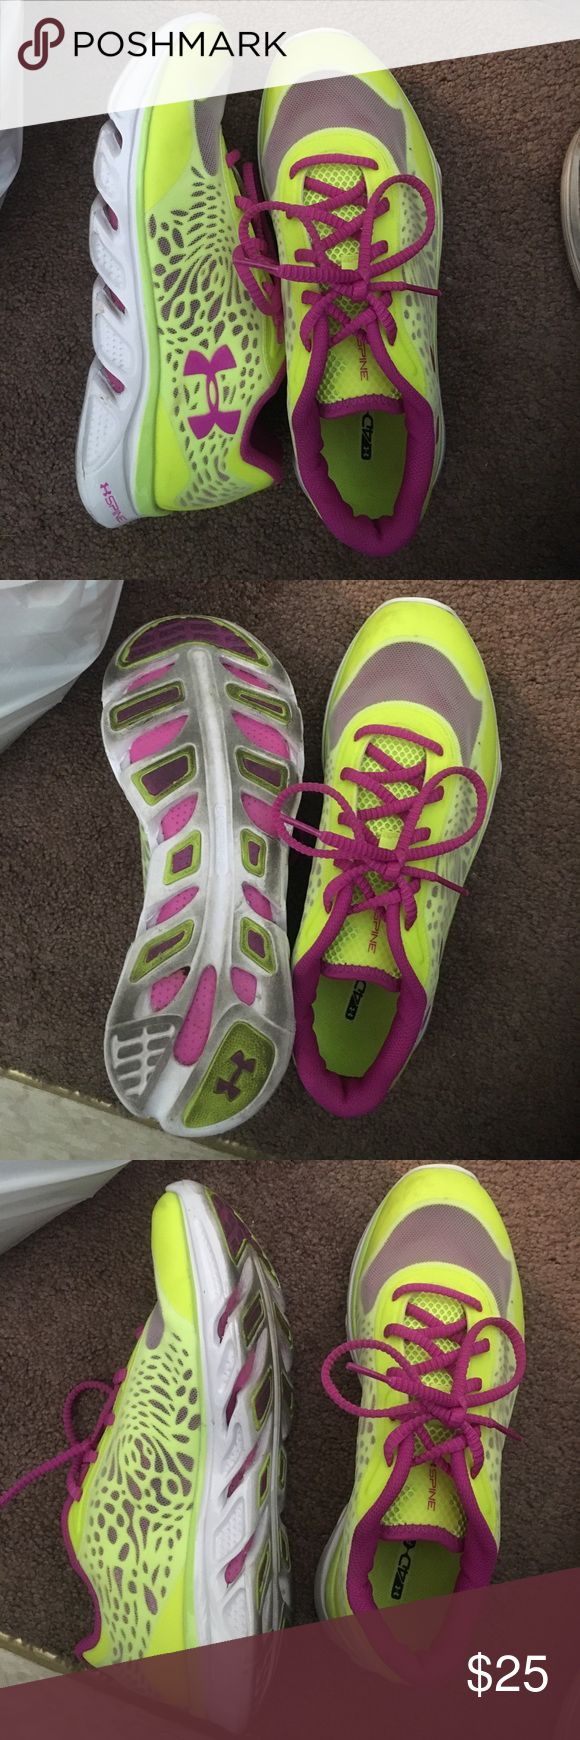 Under Armour Neon Running Shoe Only worn once. Bright color! Great condition! Under Armour Shoes Athletic Shoes